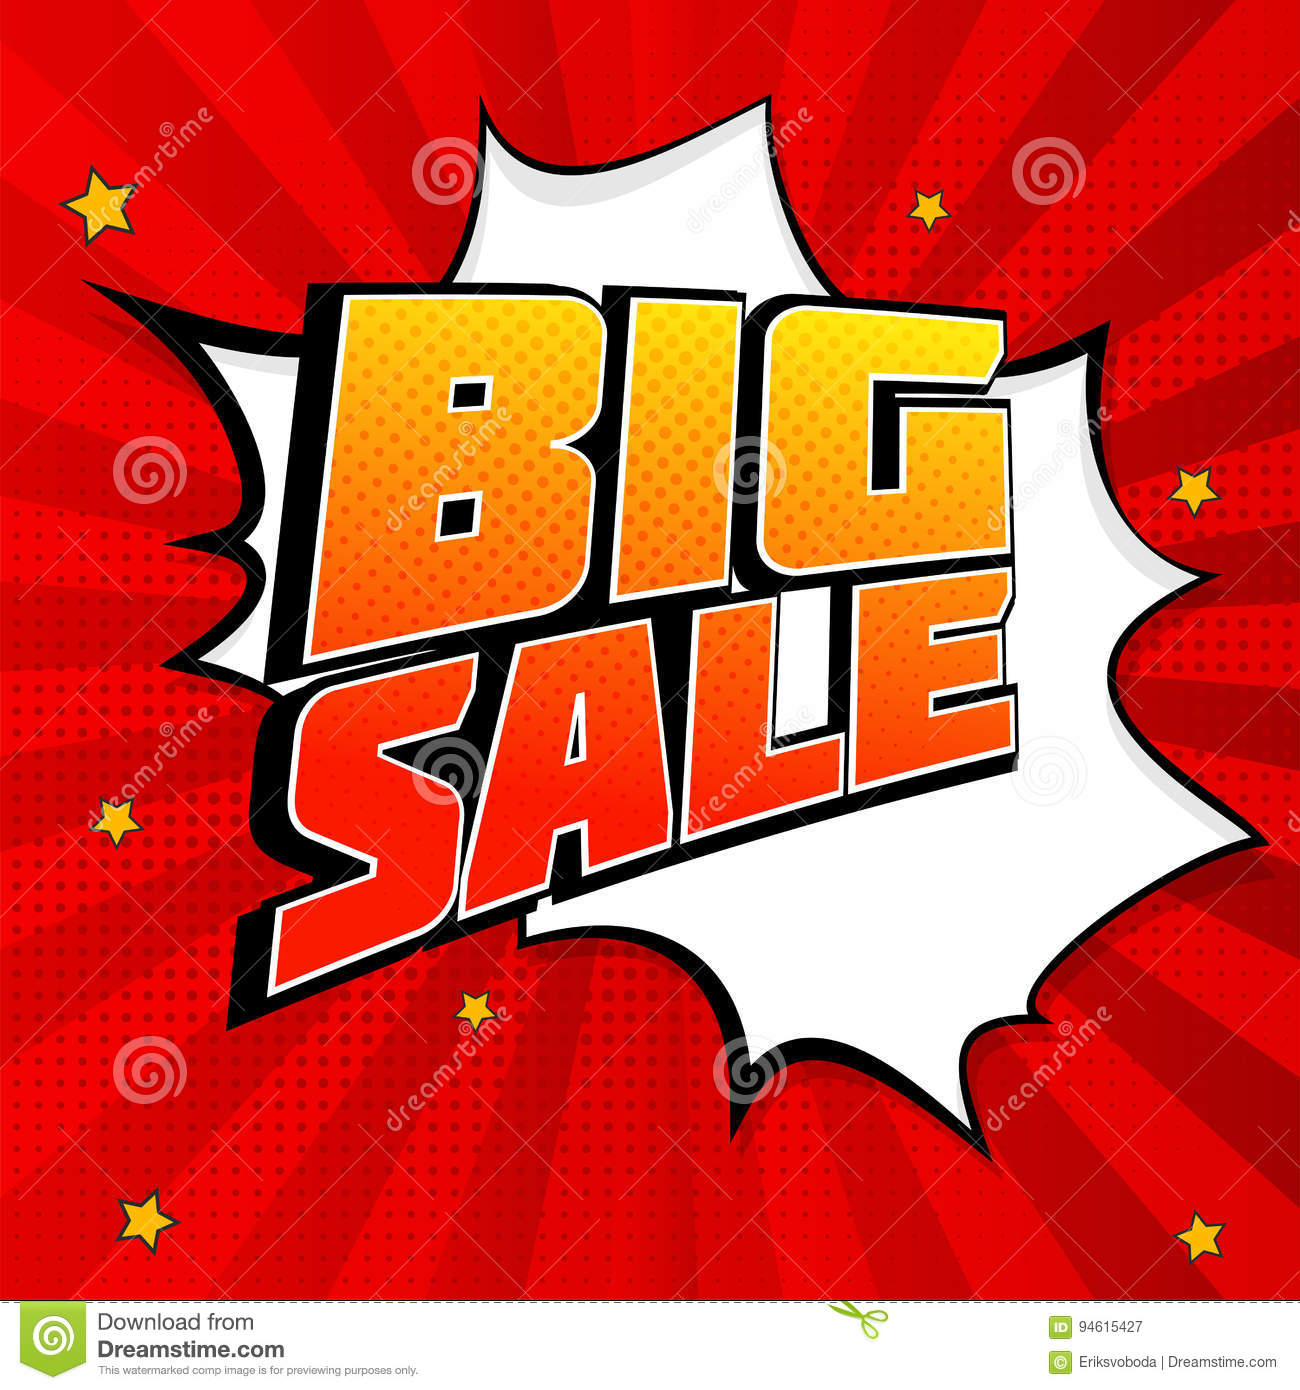 Big sale pop art splash background, explosion in comics book style. Advertising signboard, price reduction, sale with